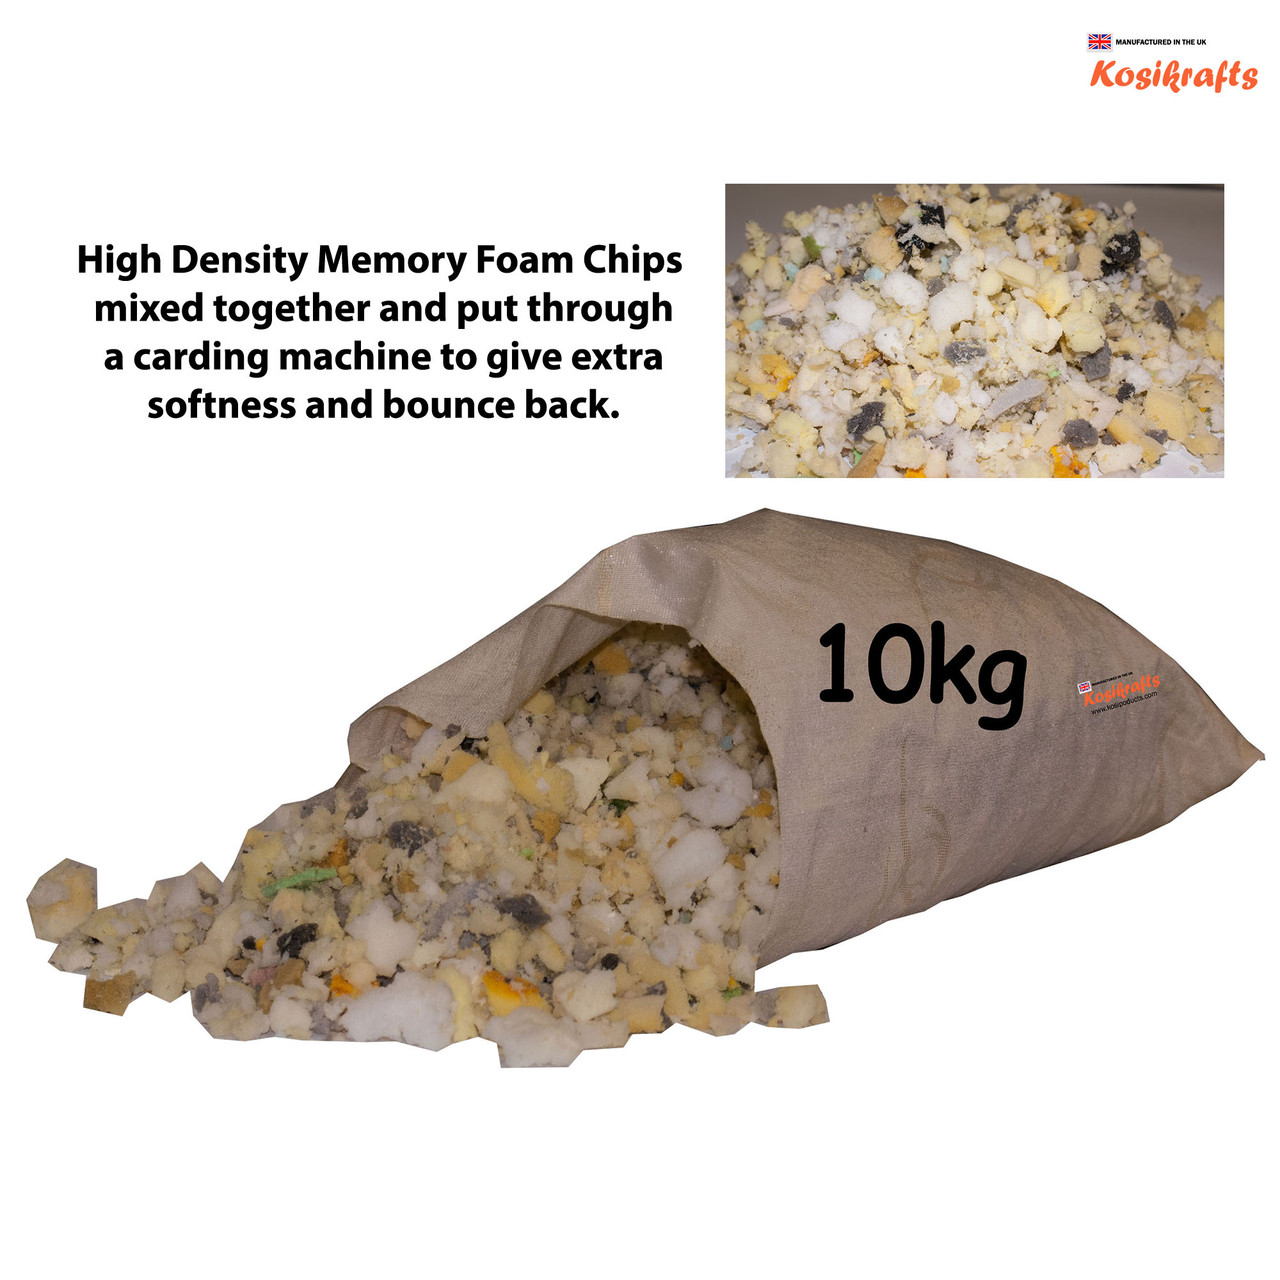 kosikrafts 10kg Memory Foam Chips cushion soft toy stuffing filling for cushion fillers bag